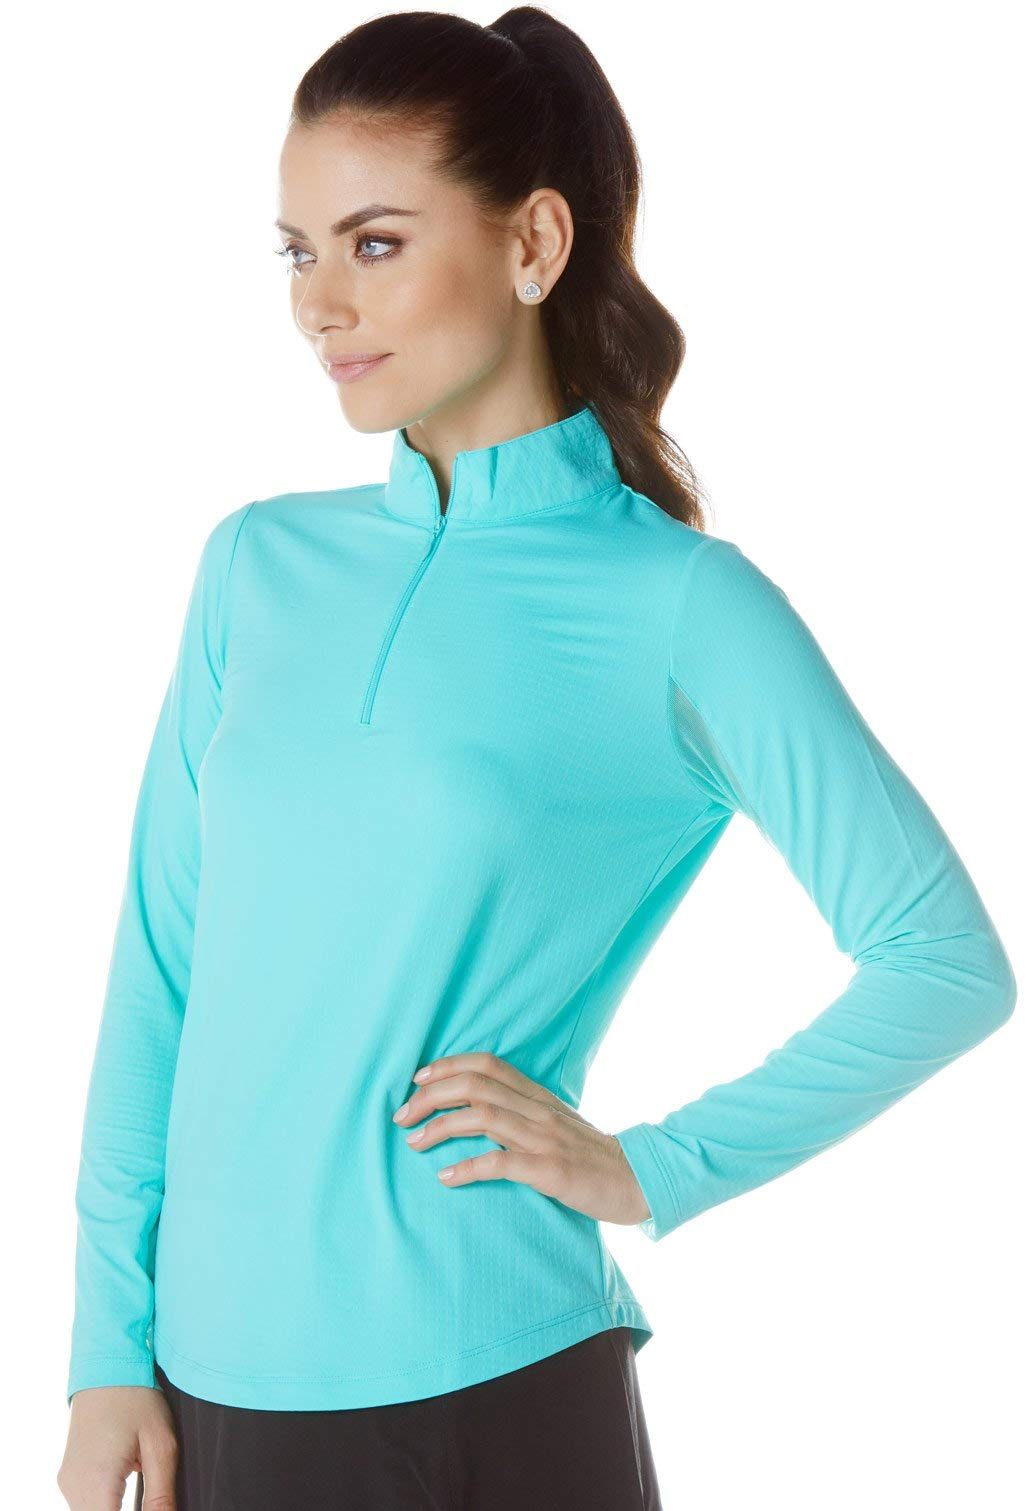 Solid Mock Neck Top - 80000 (M, Seafoam) by IBKUL